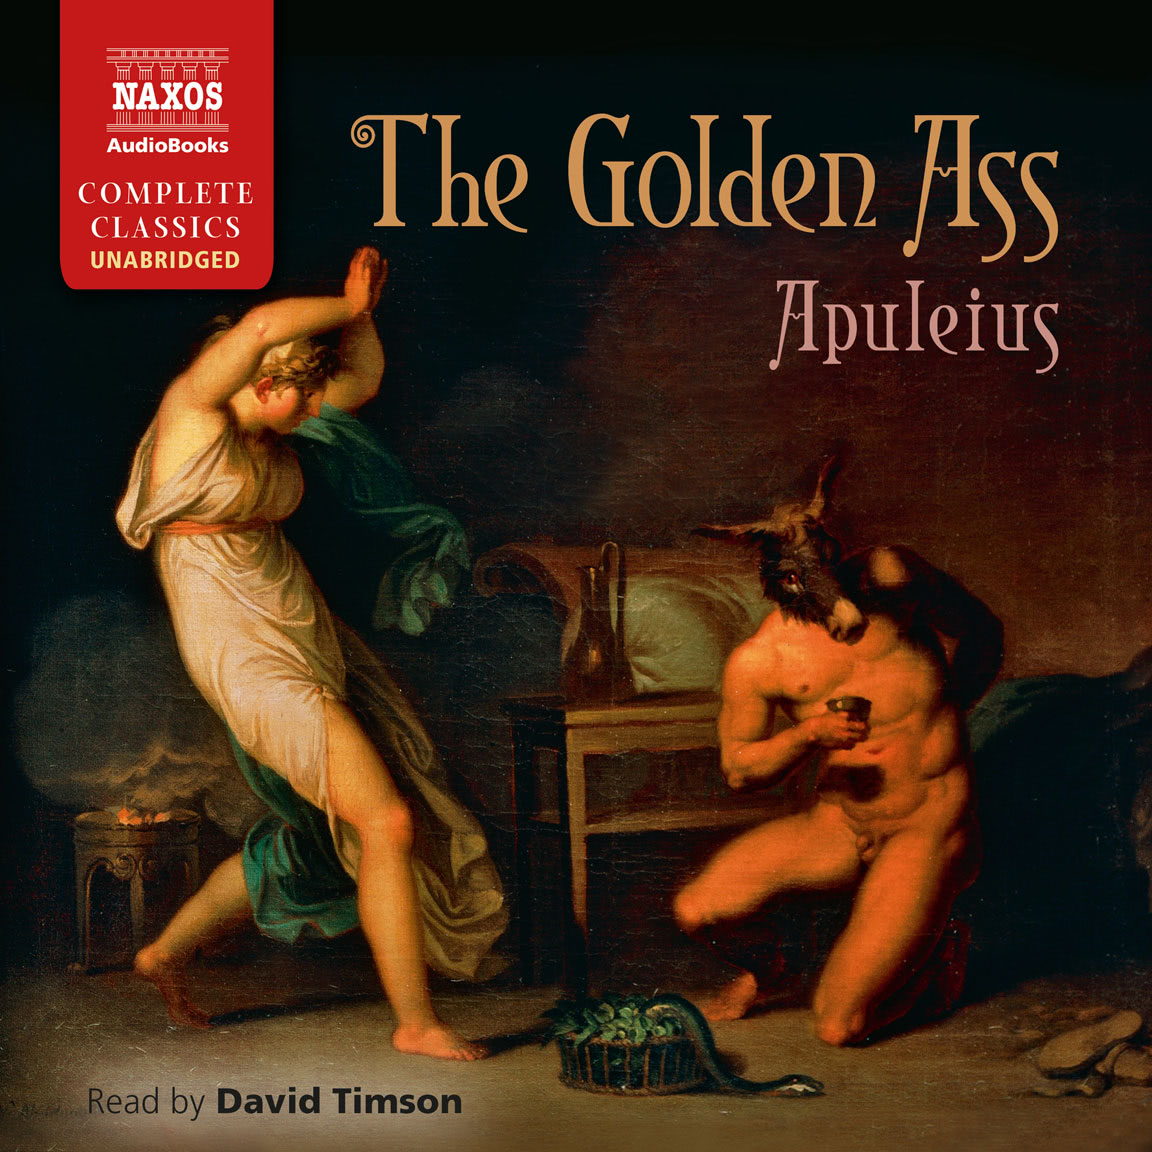 The Golden Ass (unabridged)